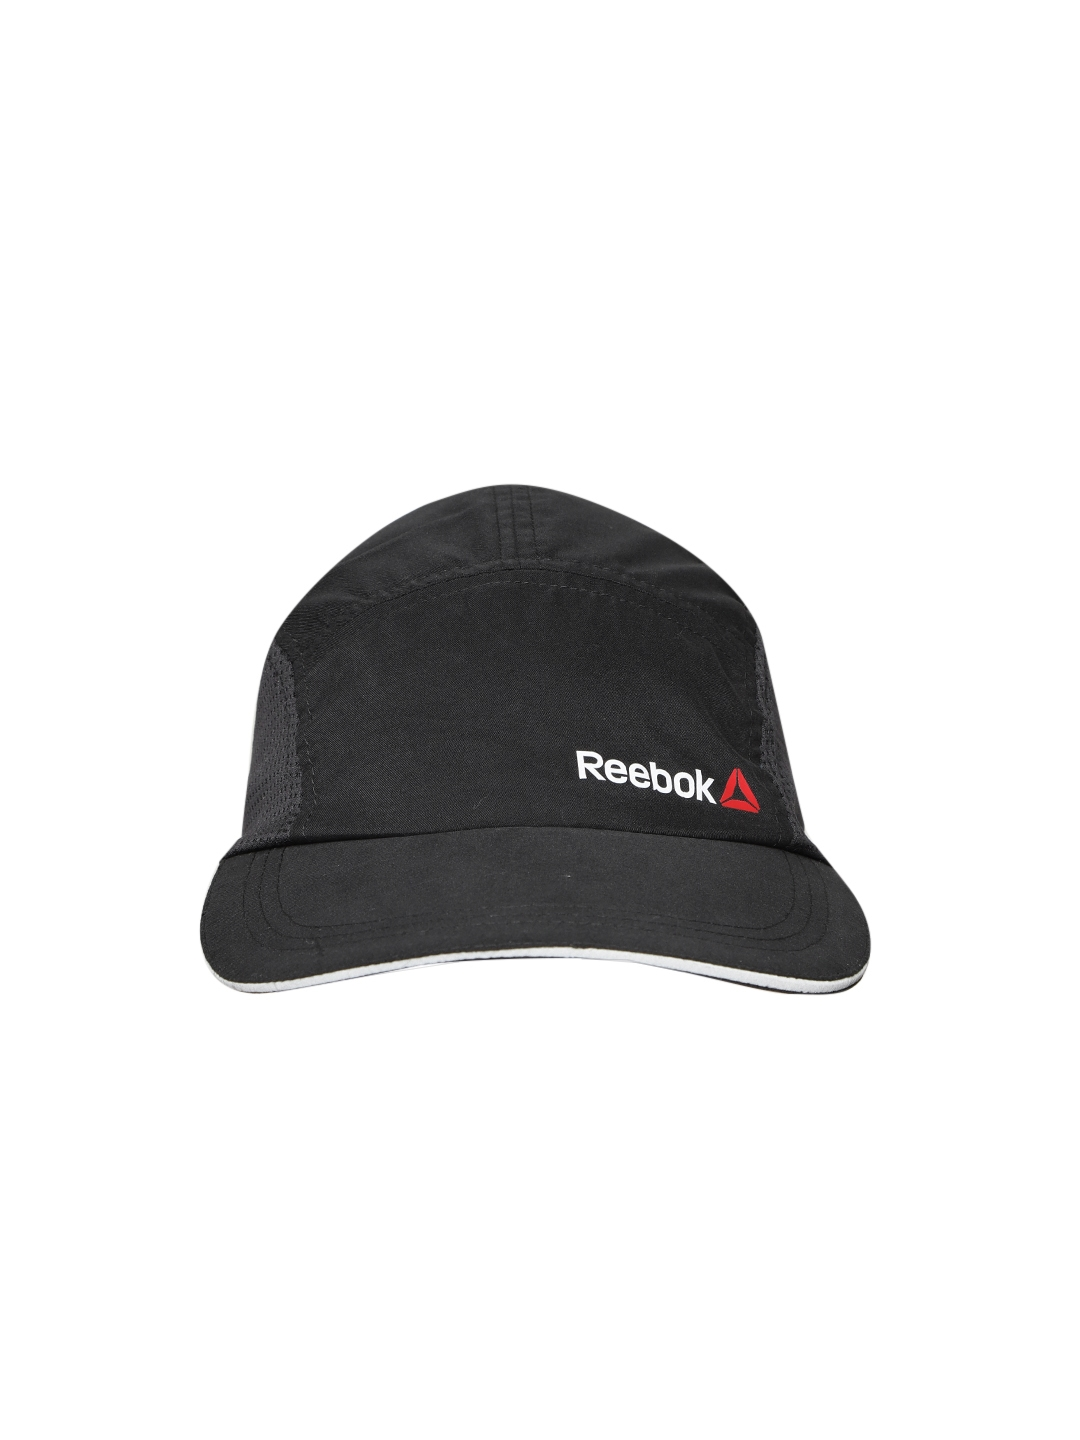 Buy Reebok Unisex Black OS PERF Solid Running Cap - Caps for Unisex ... 712081aa142